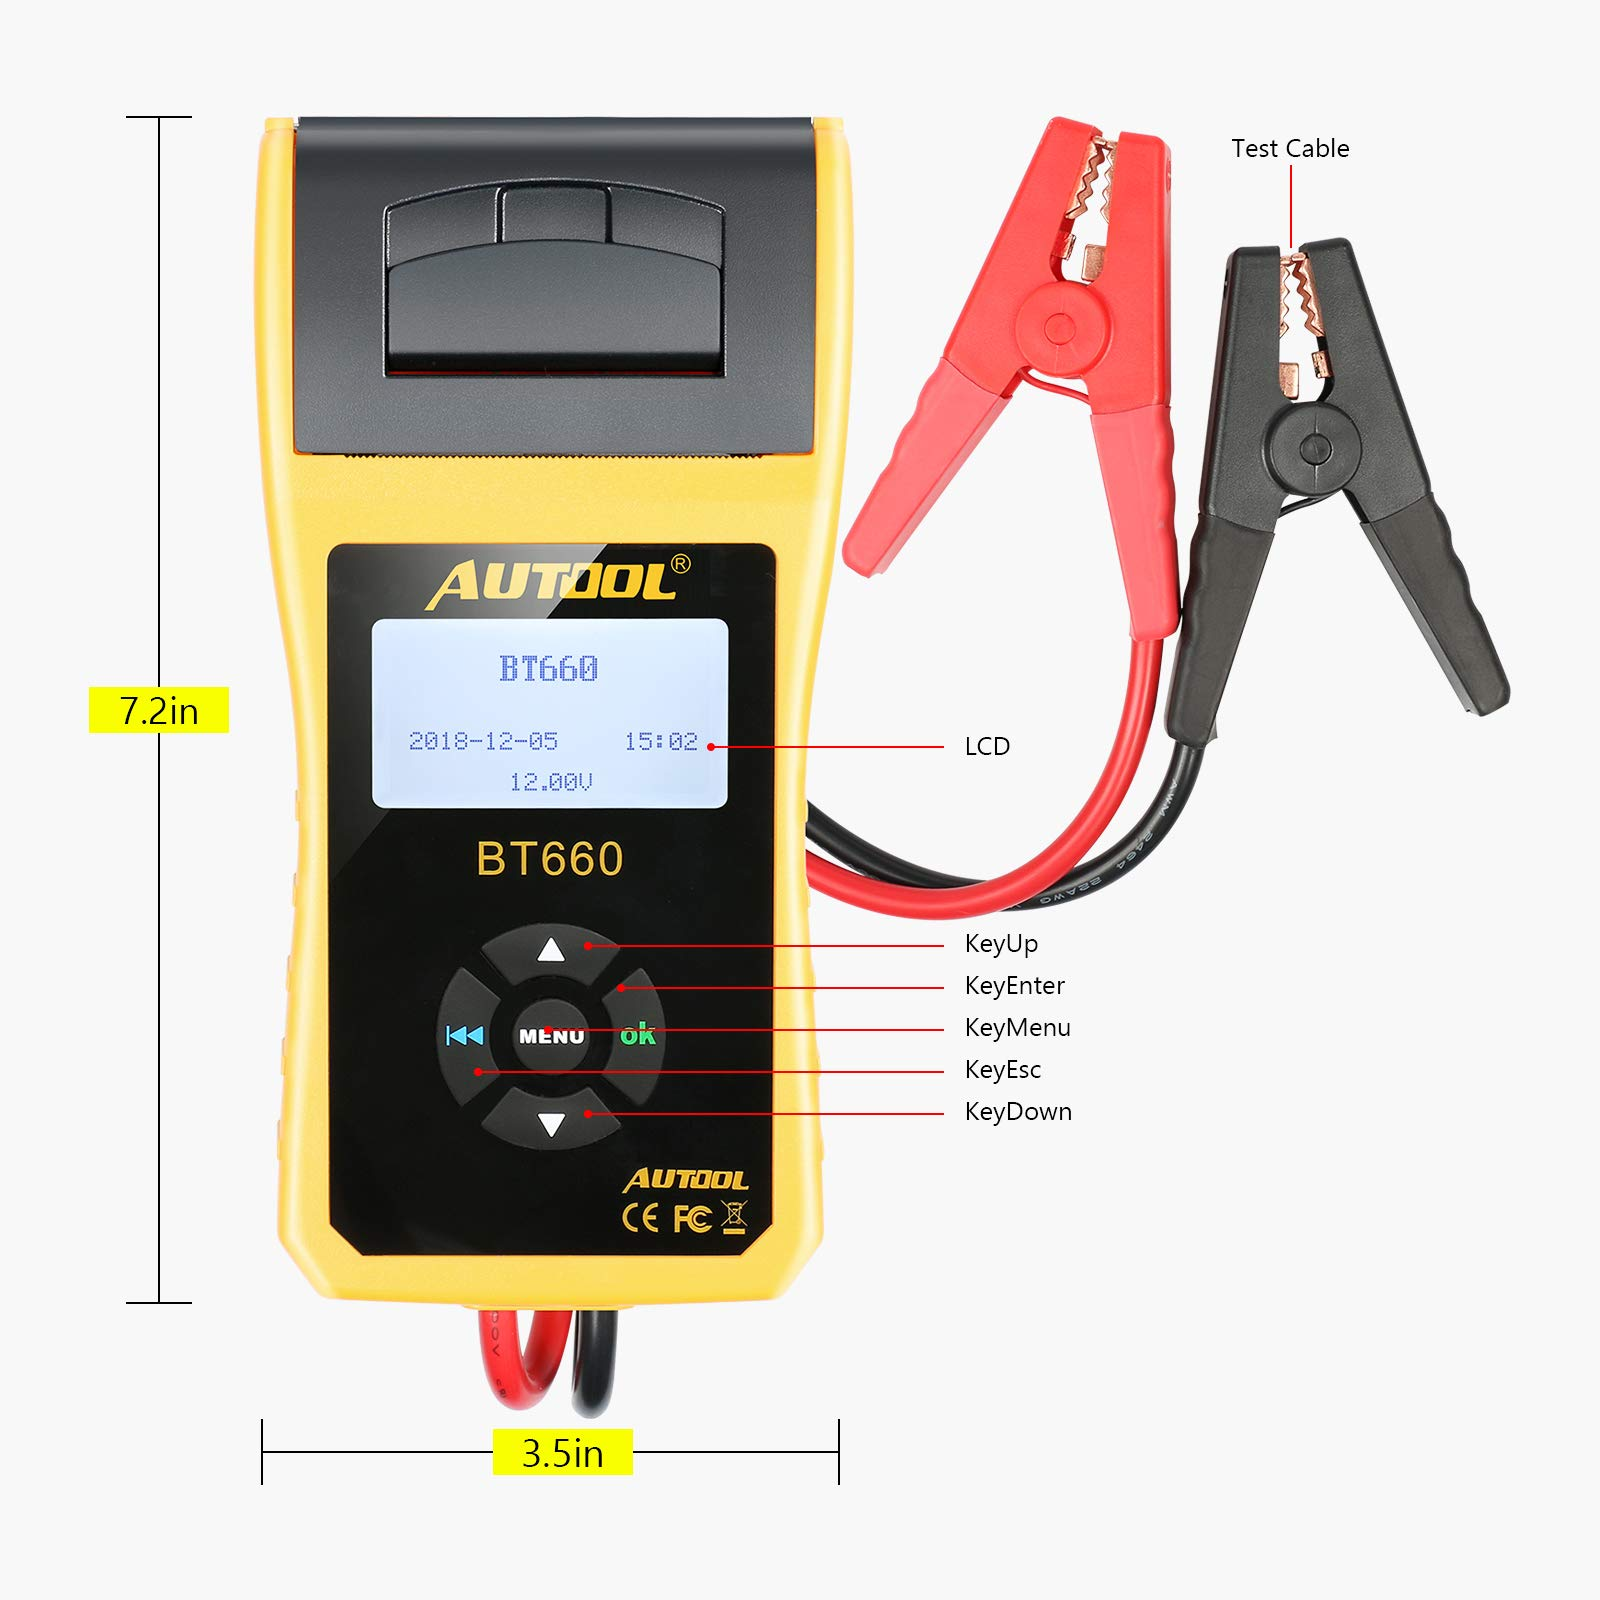 AUTOOL BT660 Battery Conductance Tester 12V/24V BT-660 Auto Battery Testers Automotive Diagnostic Tools for Heavy Duty Trucks, Light Duty Truck, Cars by AUTOOL (Image #8)